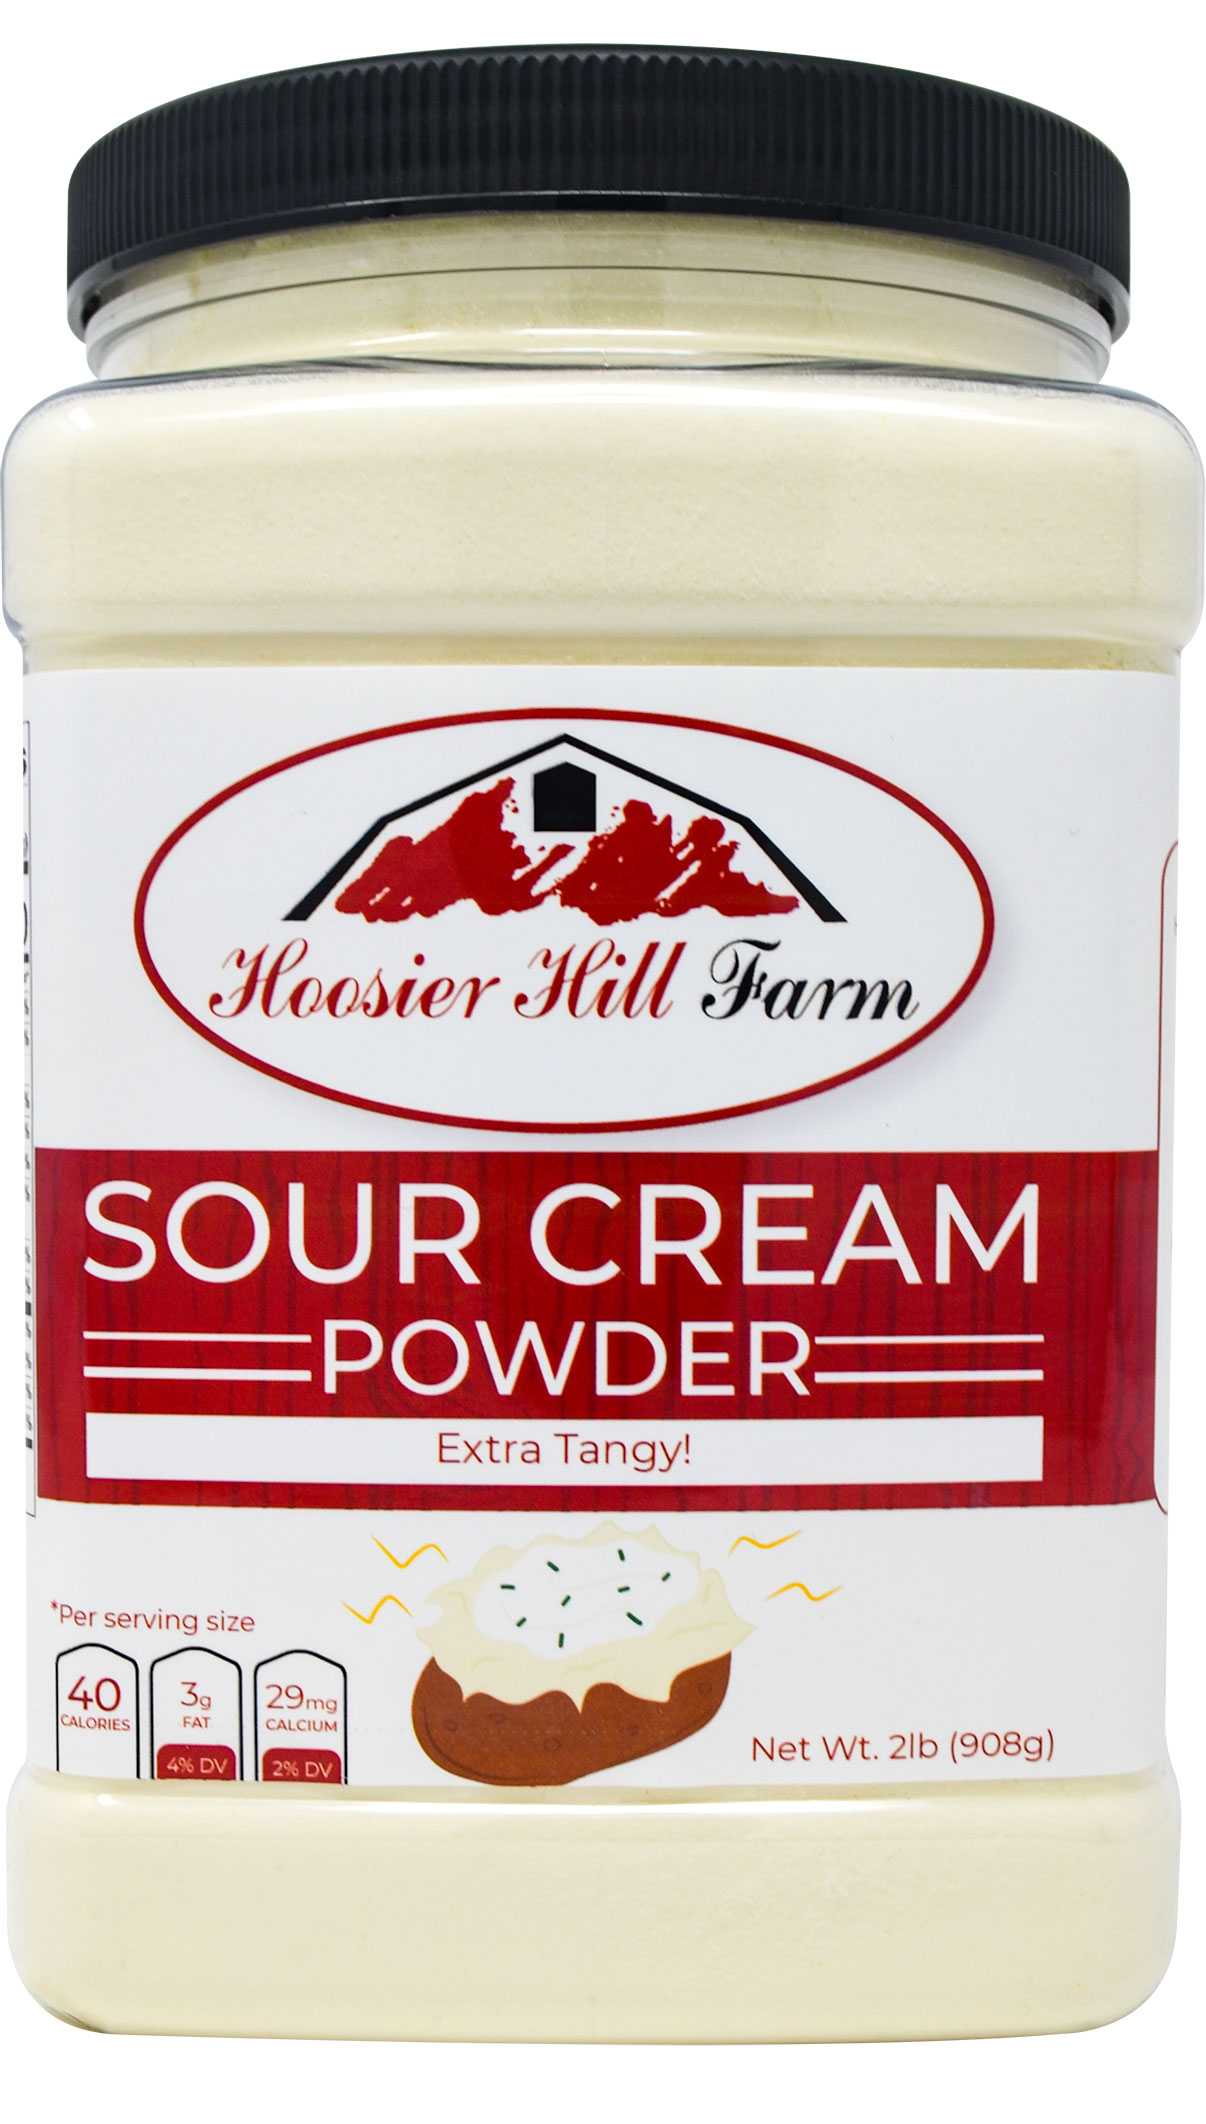 Hoosier Hill Farm EXTRA Tangy Sour Cream Powder, 2 Lb